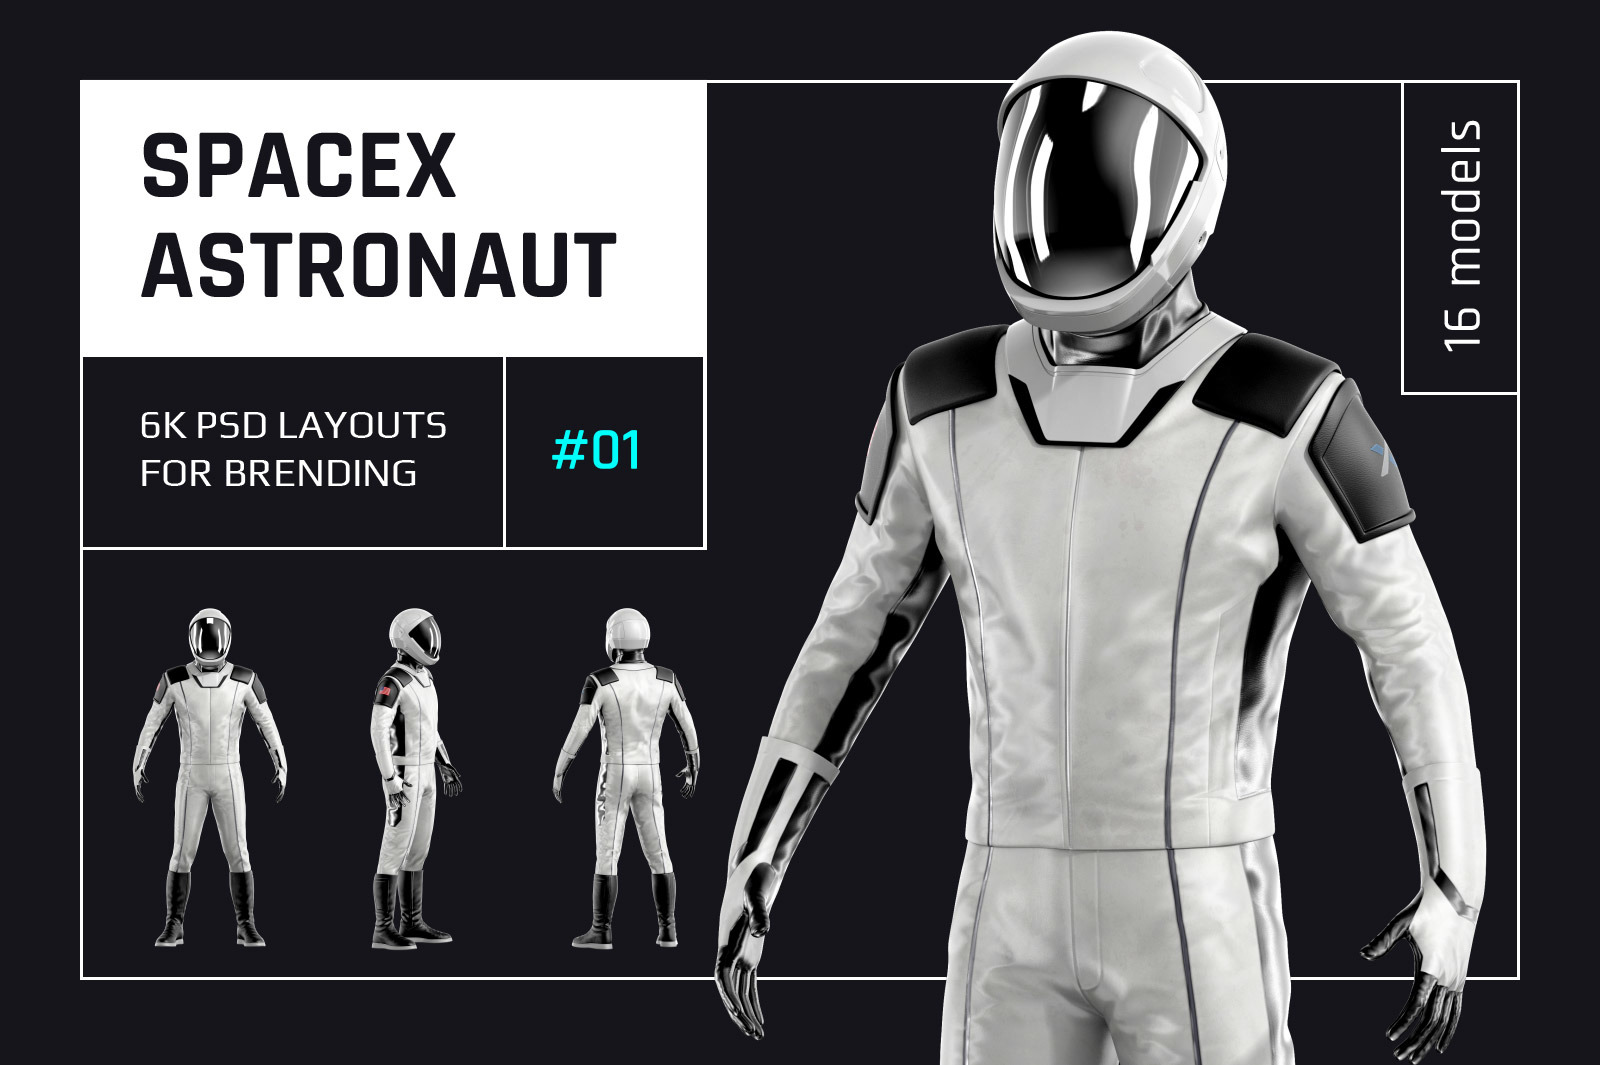 PSD Mockup 3D model SpaceX Astronaut #01